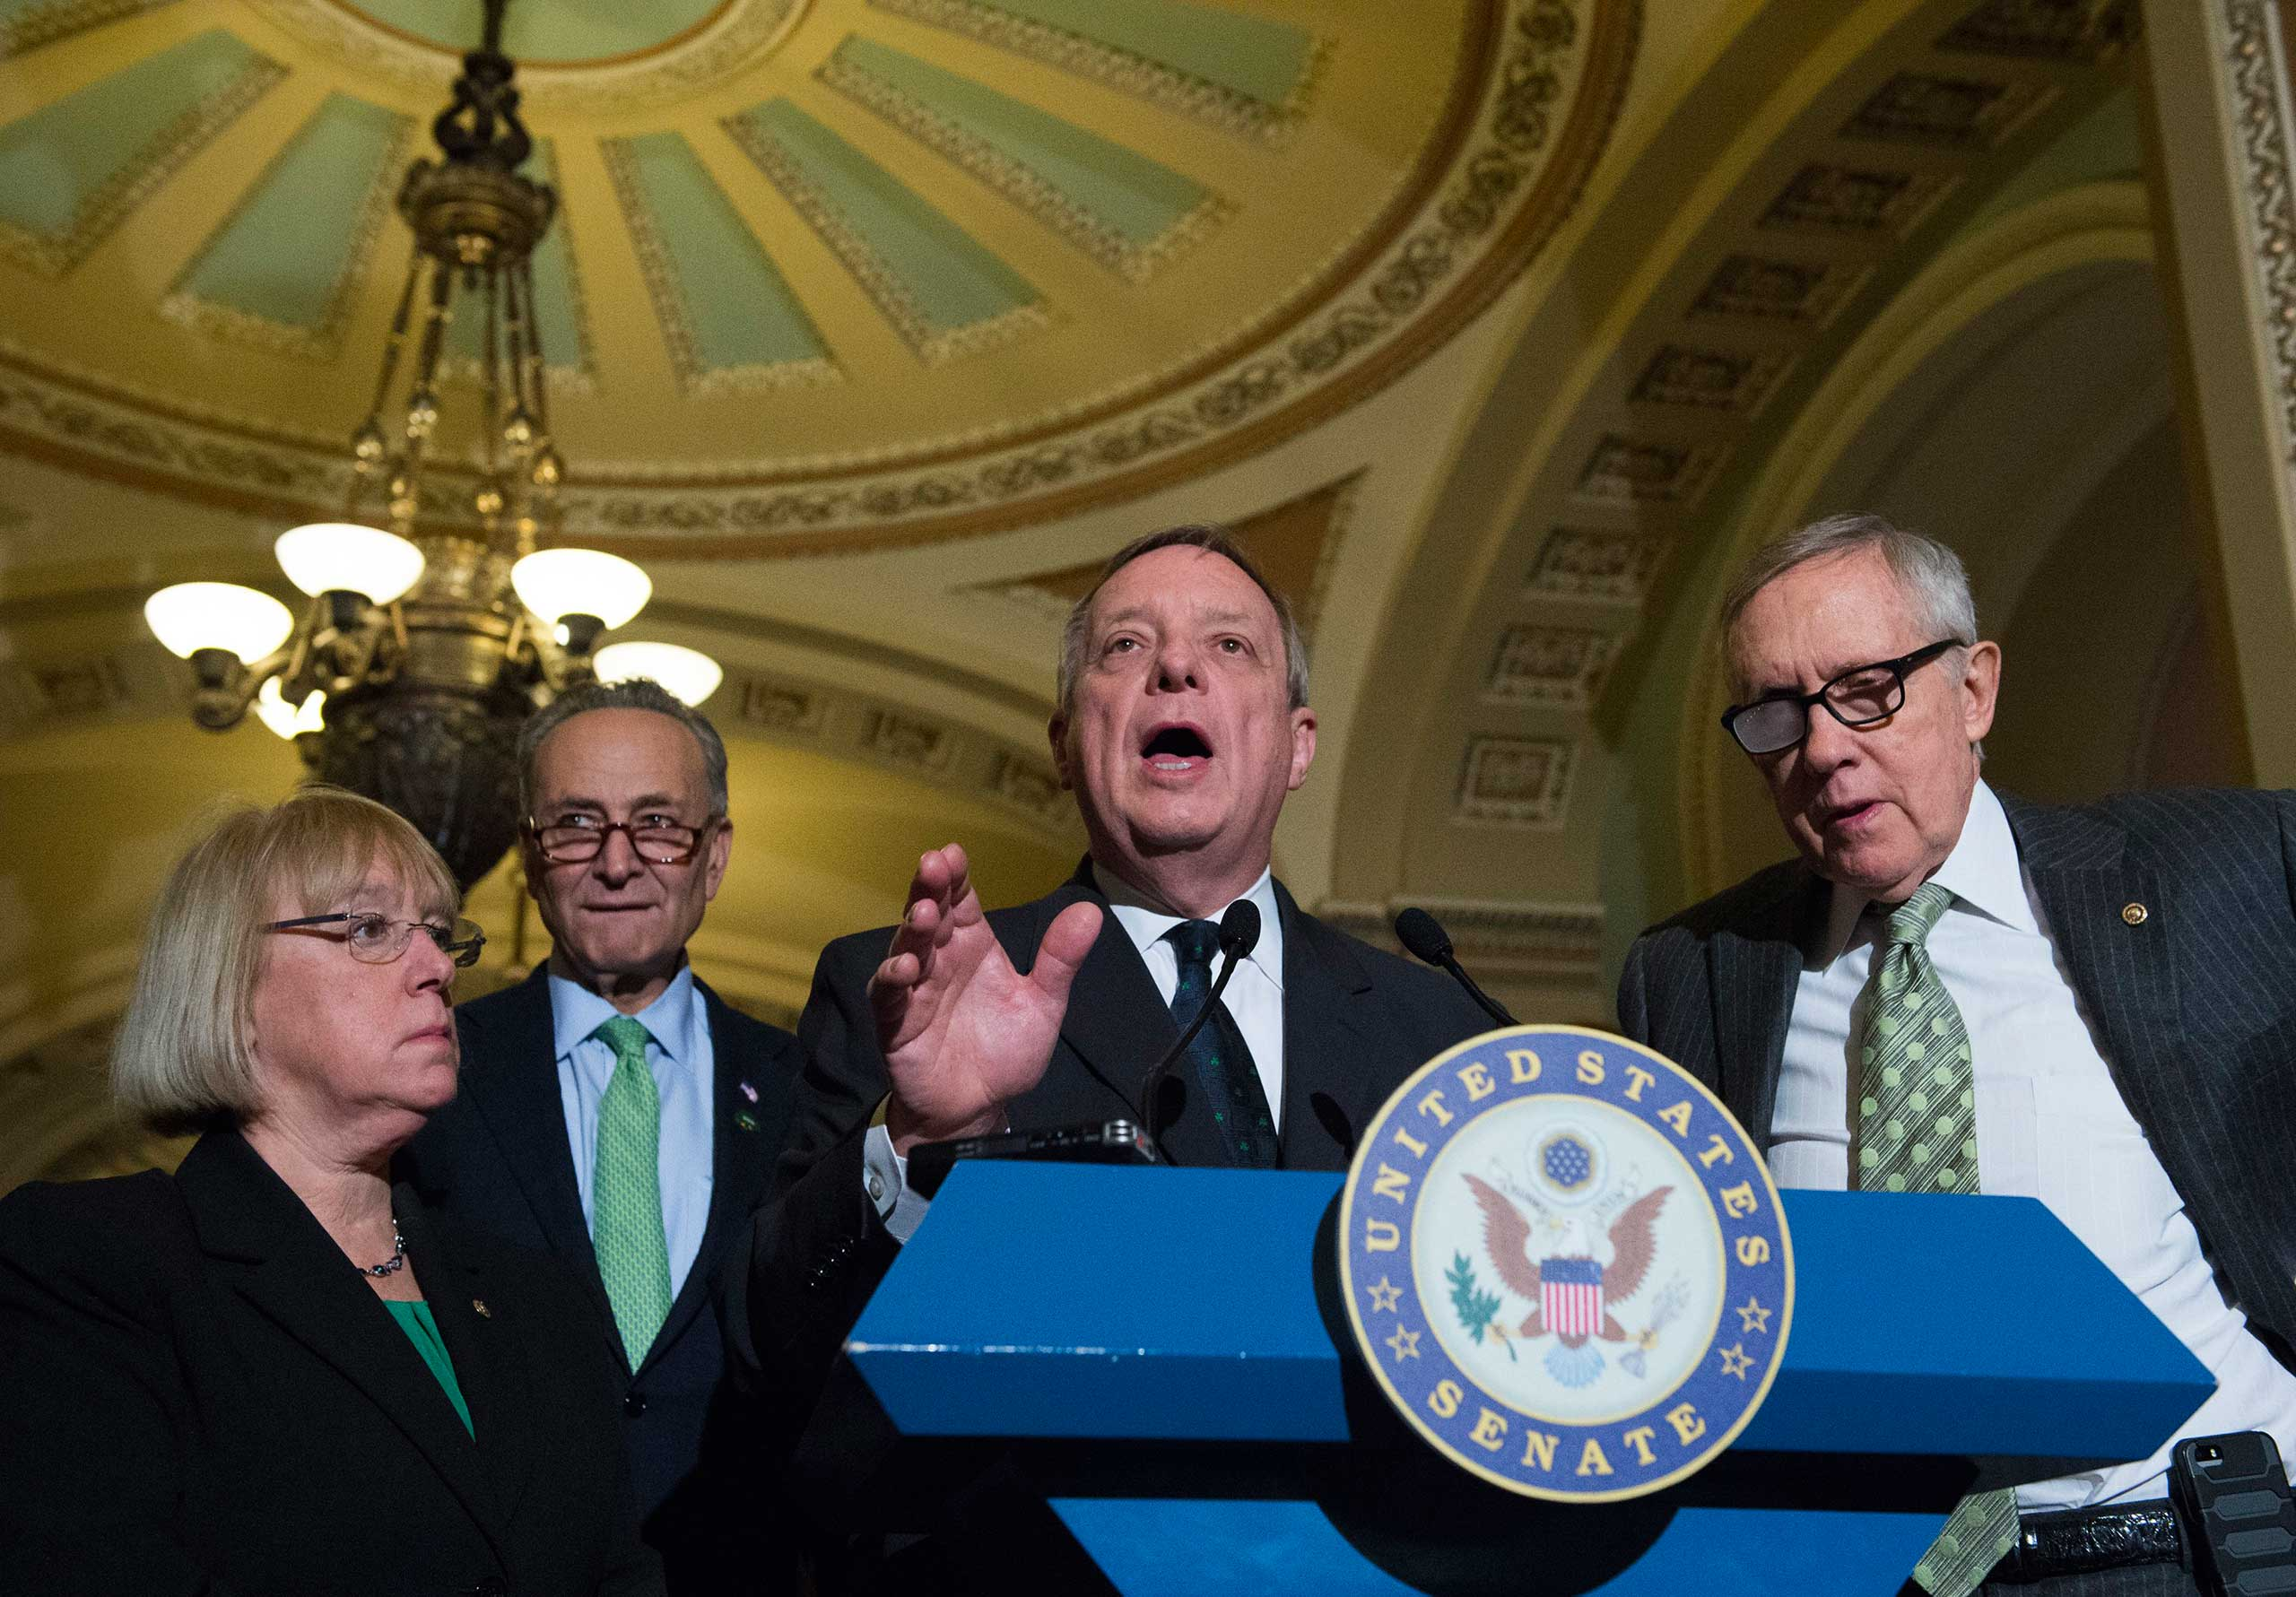 Senate Minority Whip Richard Durbin, D-Ill., speaks to reporters on Capitol Hill in Washington on March 17, 2015. From left are, Sen. Patty Murray, D-Wash., Sen. Charles Schumer, D-N.Y. Durbin, and Senate Minority Leader Harry Reid of Nev.